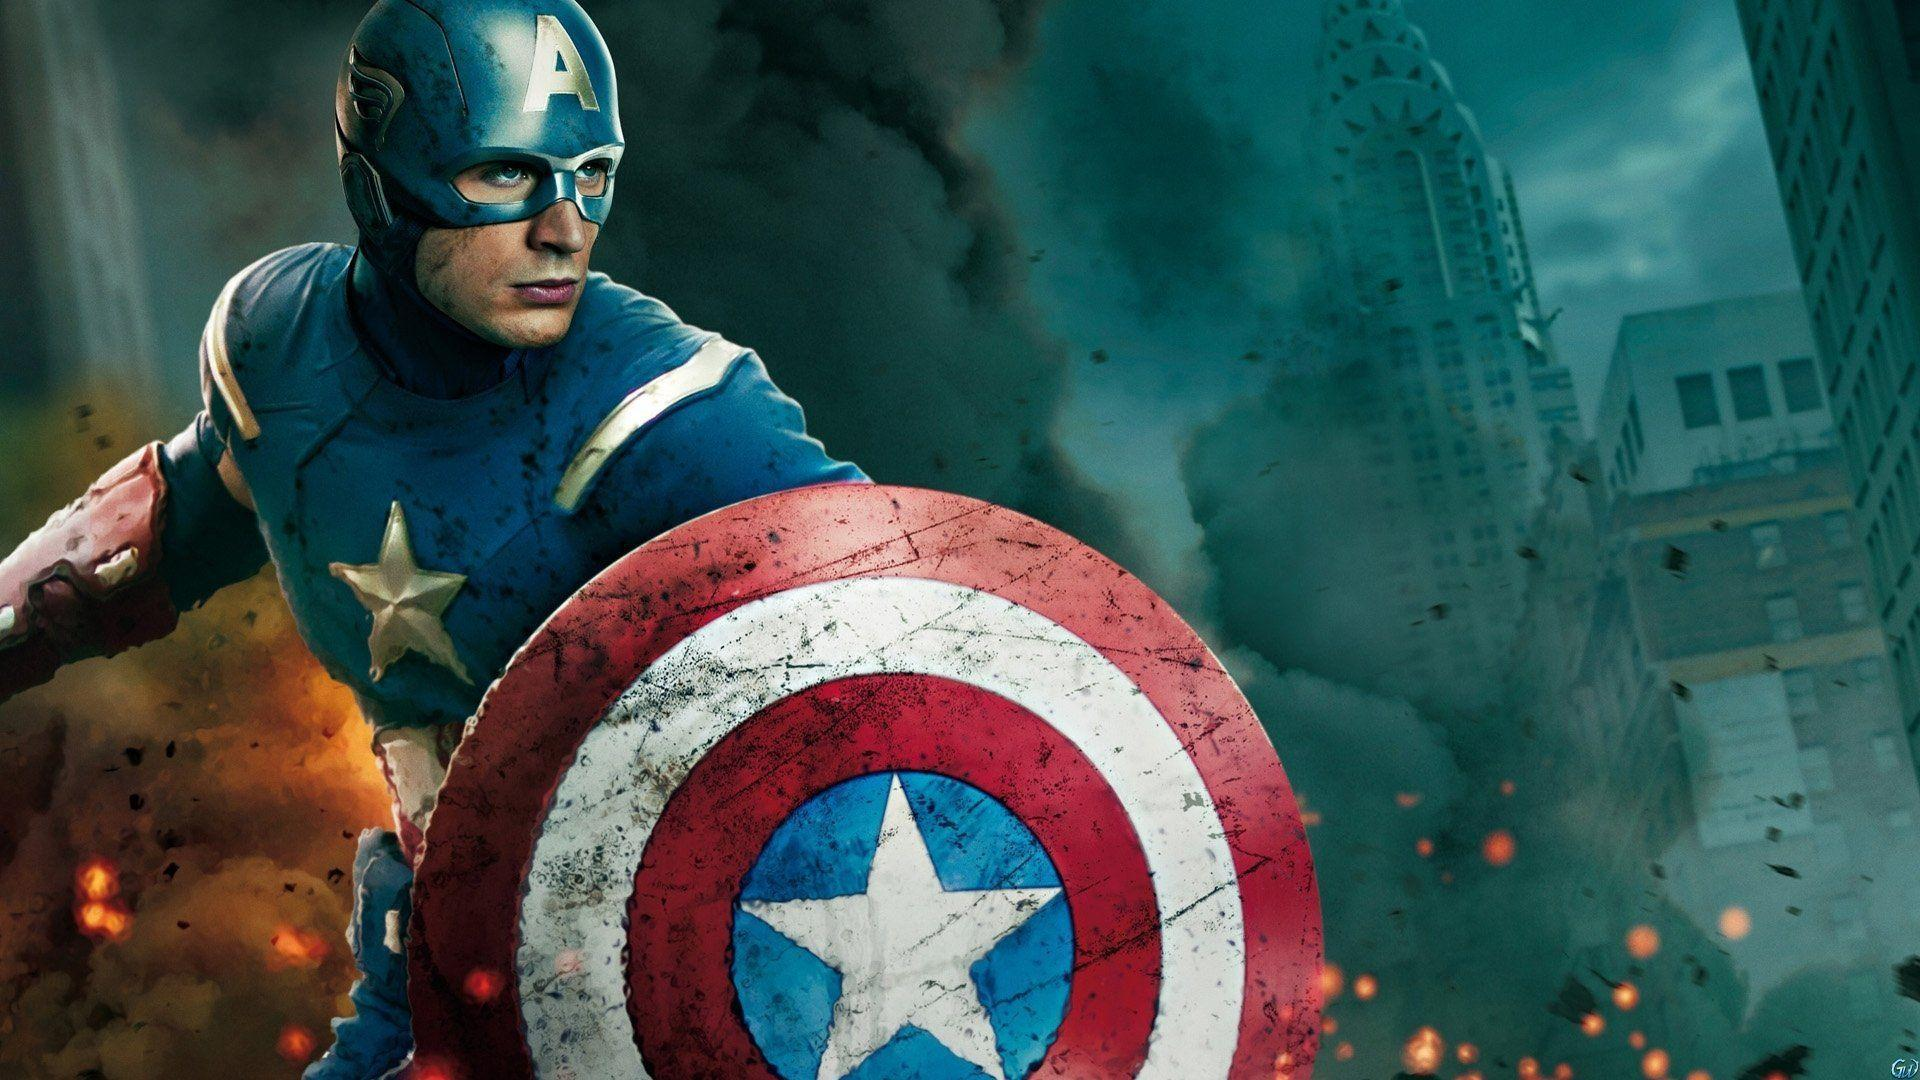 Movies Captain America The Winter Soldier Wallpapers